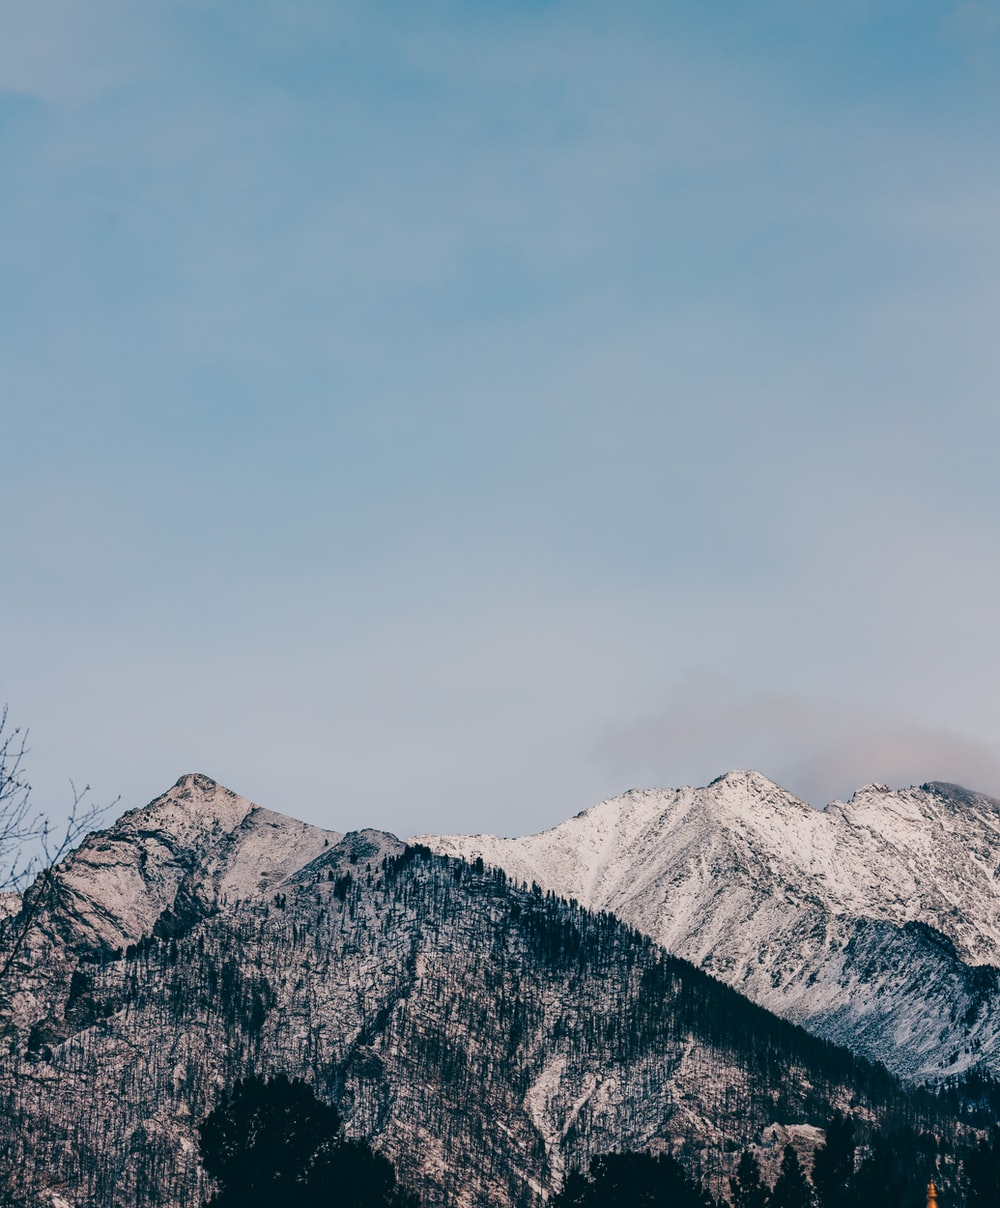 snow covered mountain under gray sky